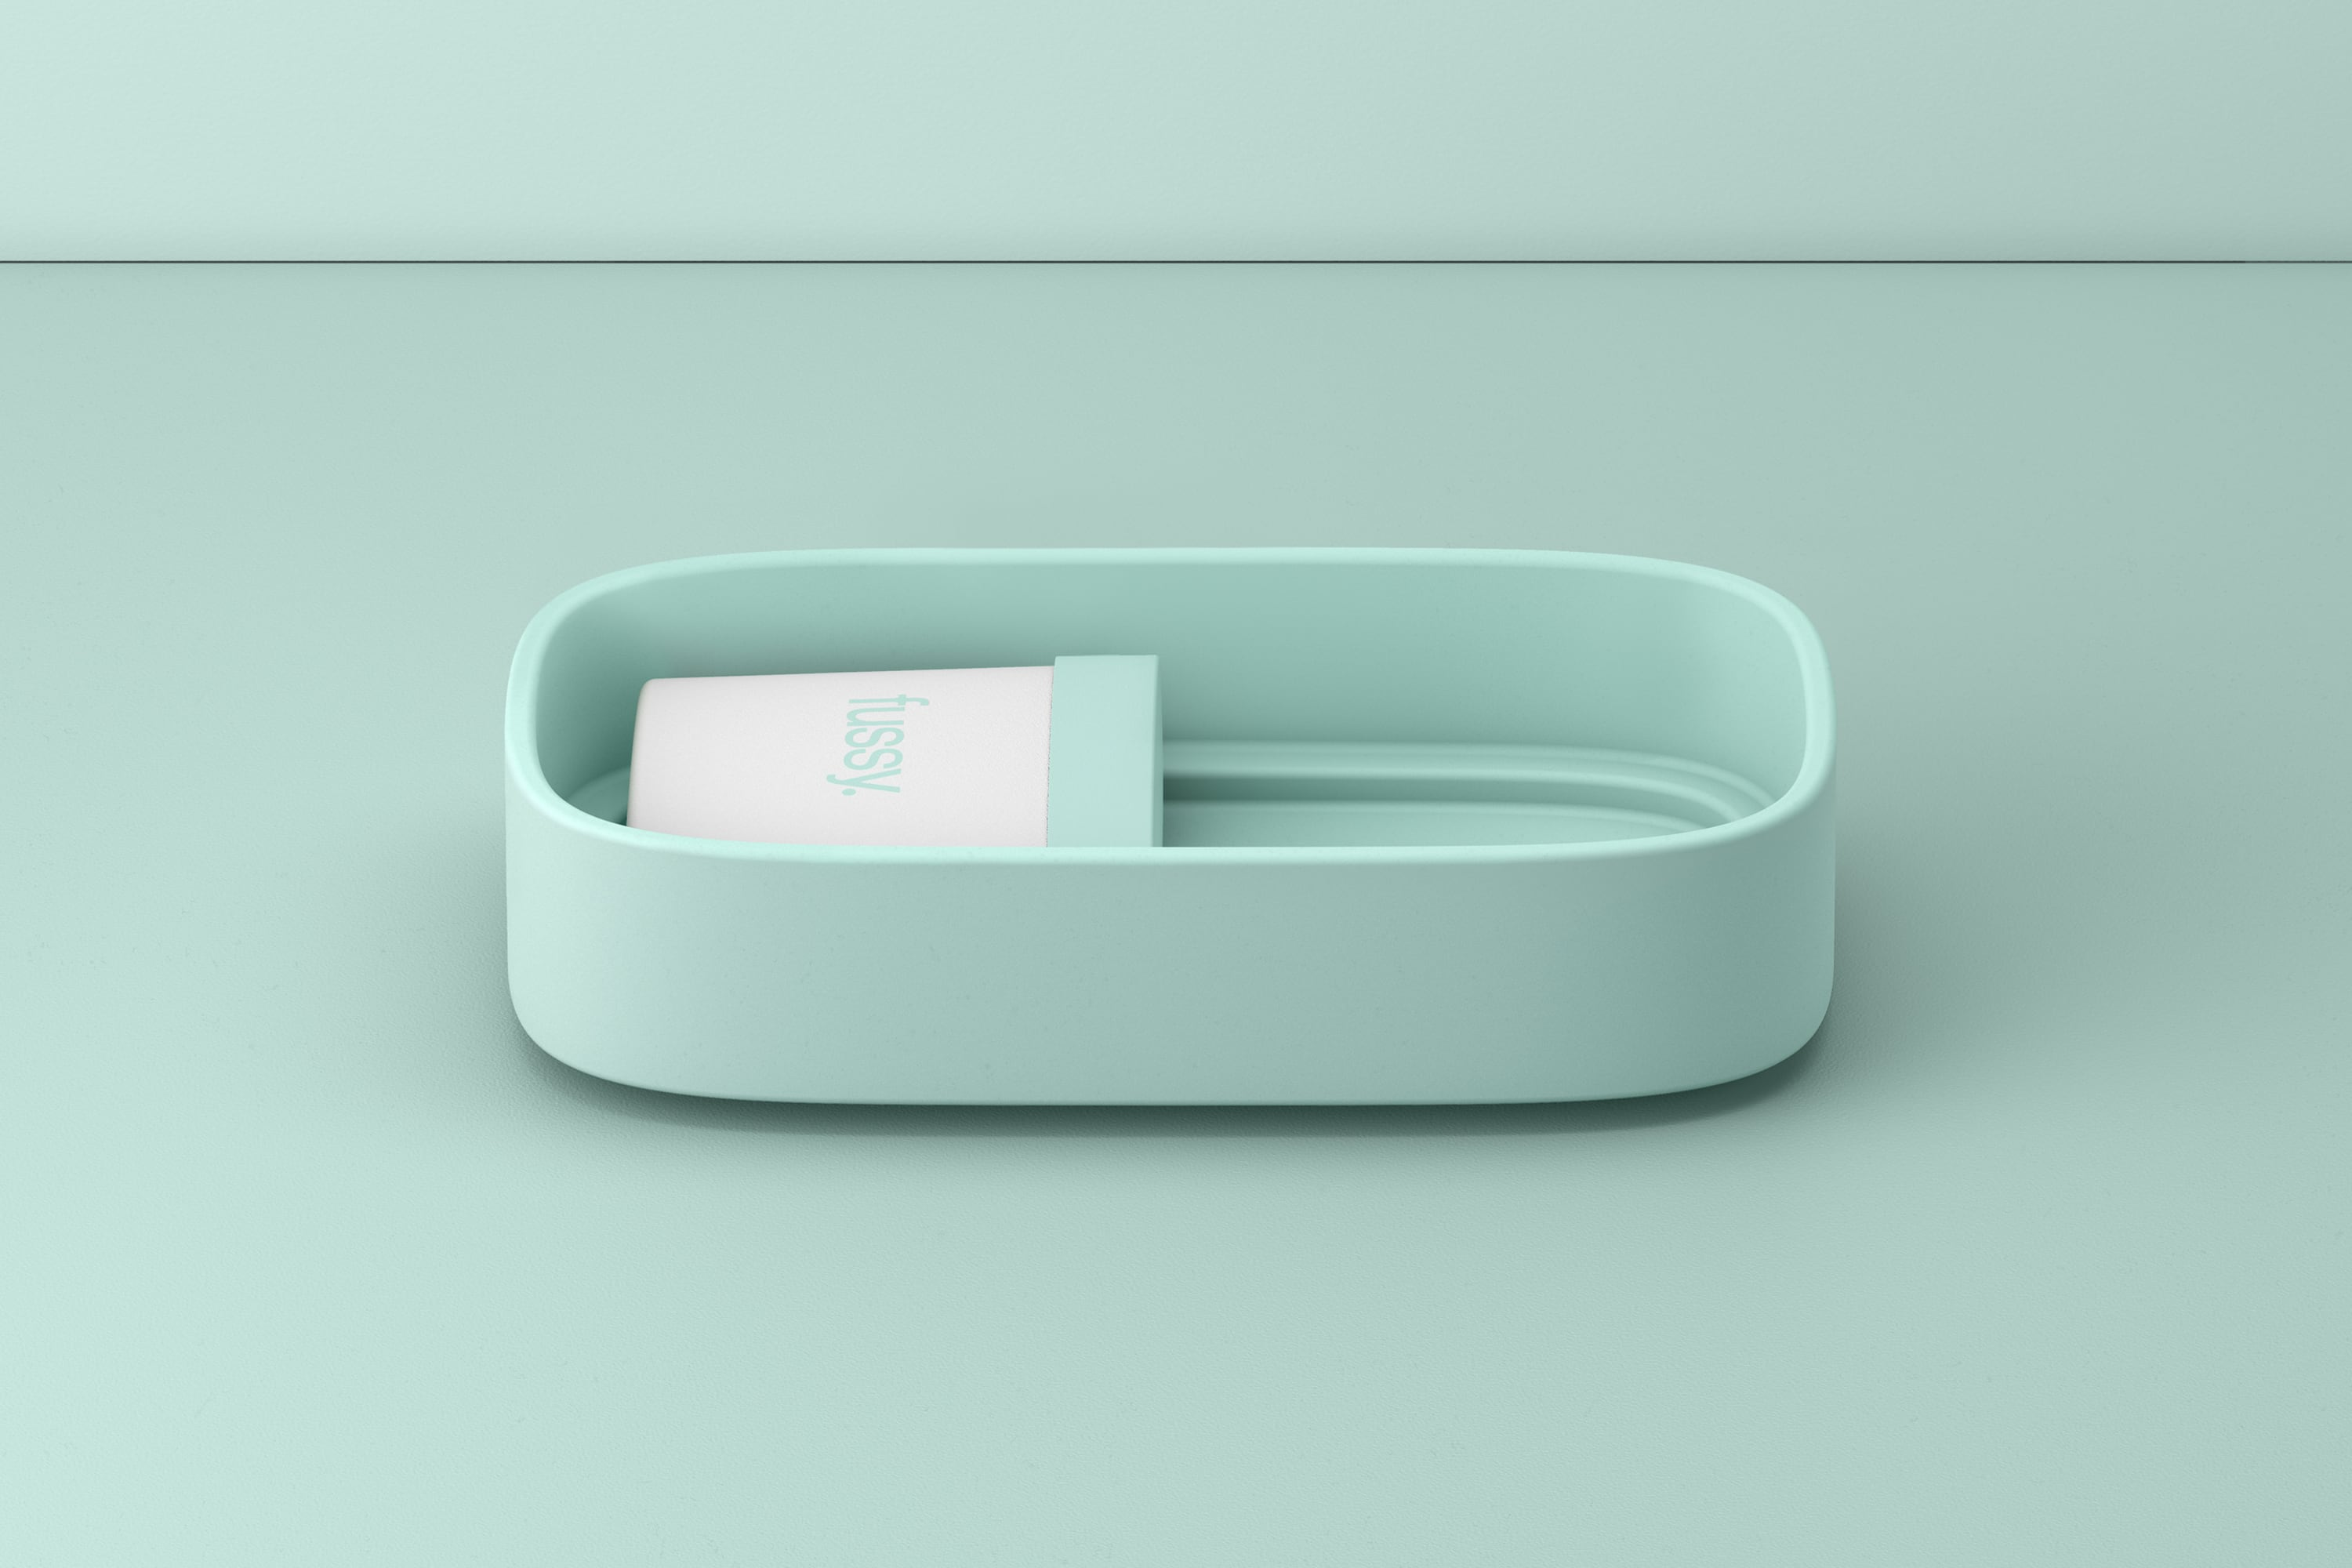 Blond-Design-Agency-Cosmetics-Packaging-Sustainable-Eco-Deodorant-Dish-05